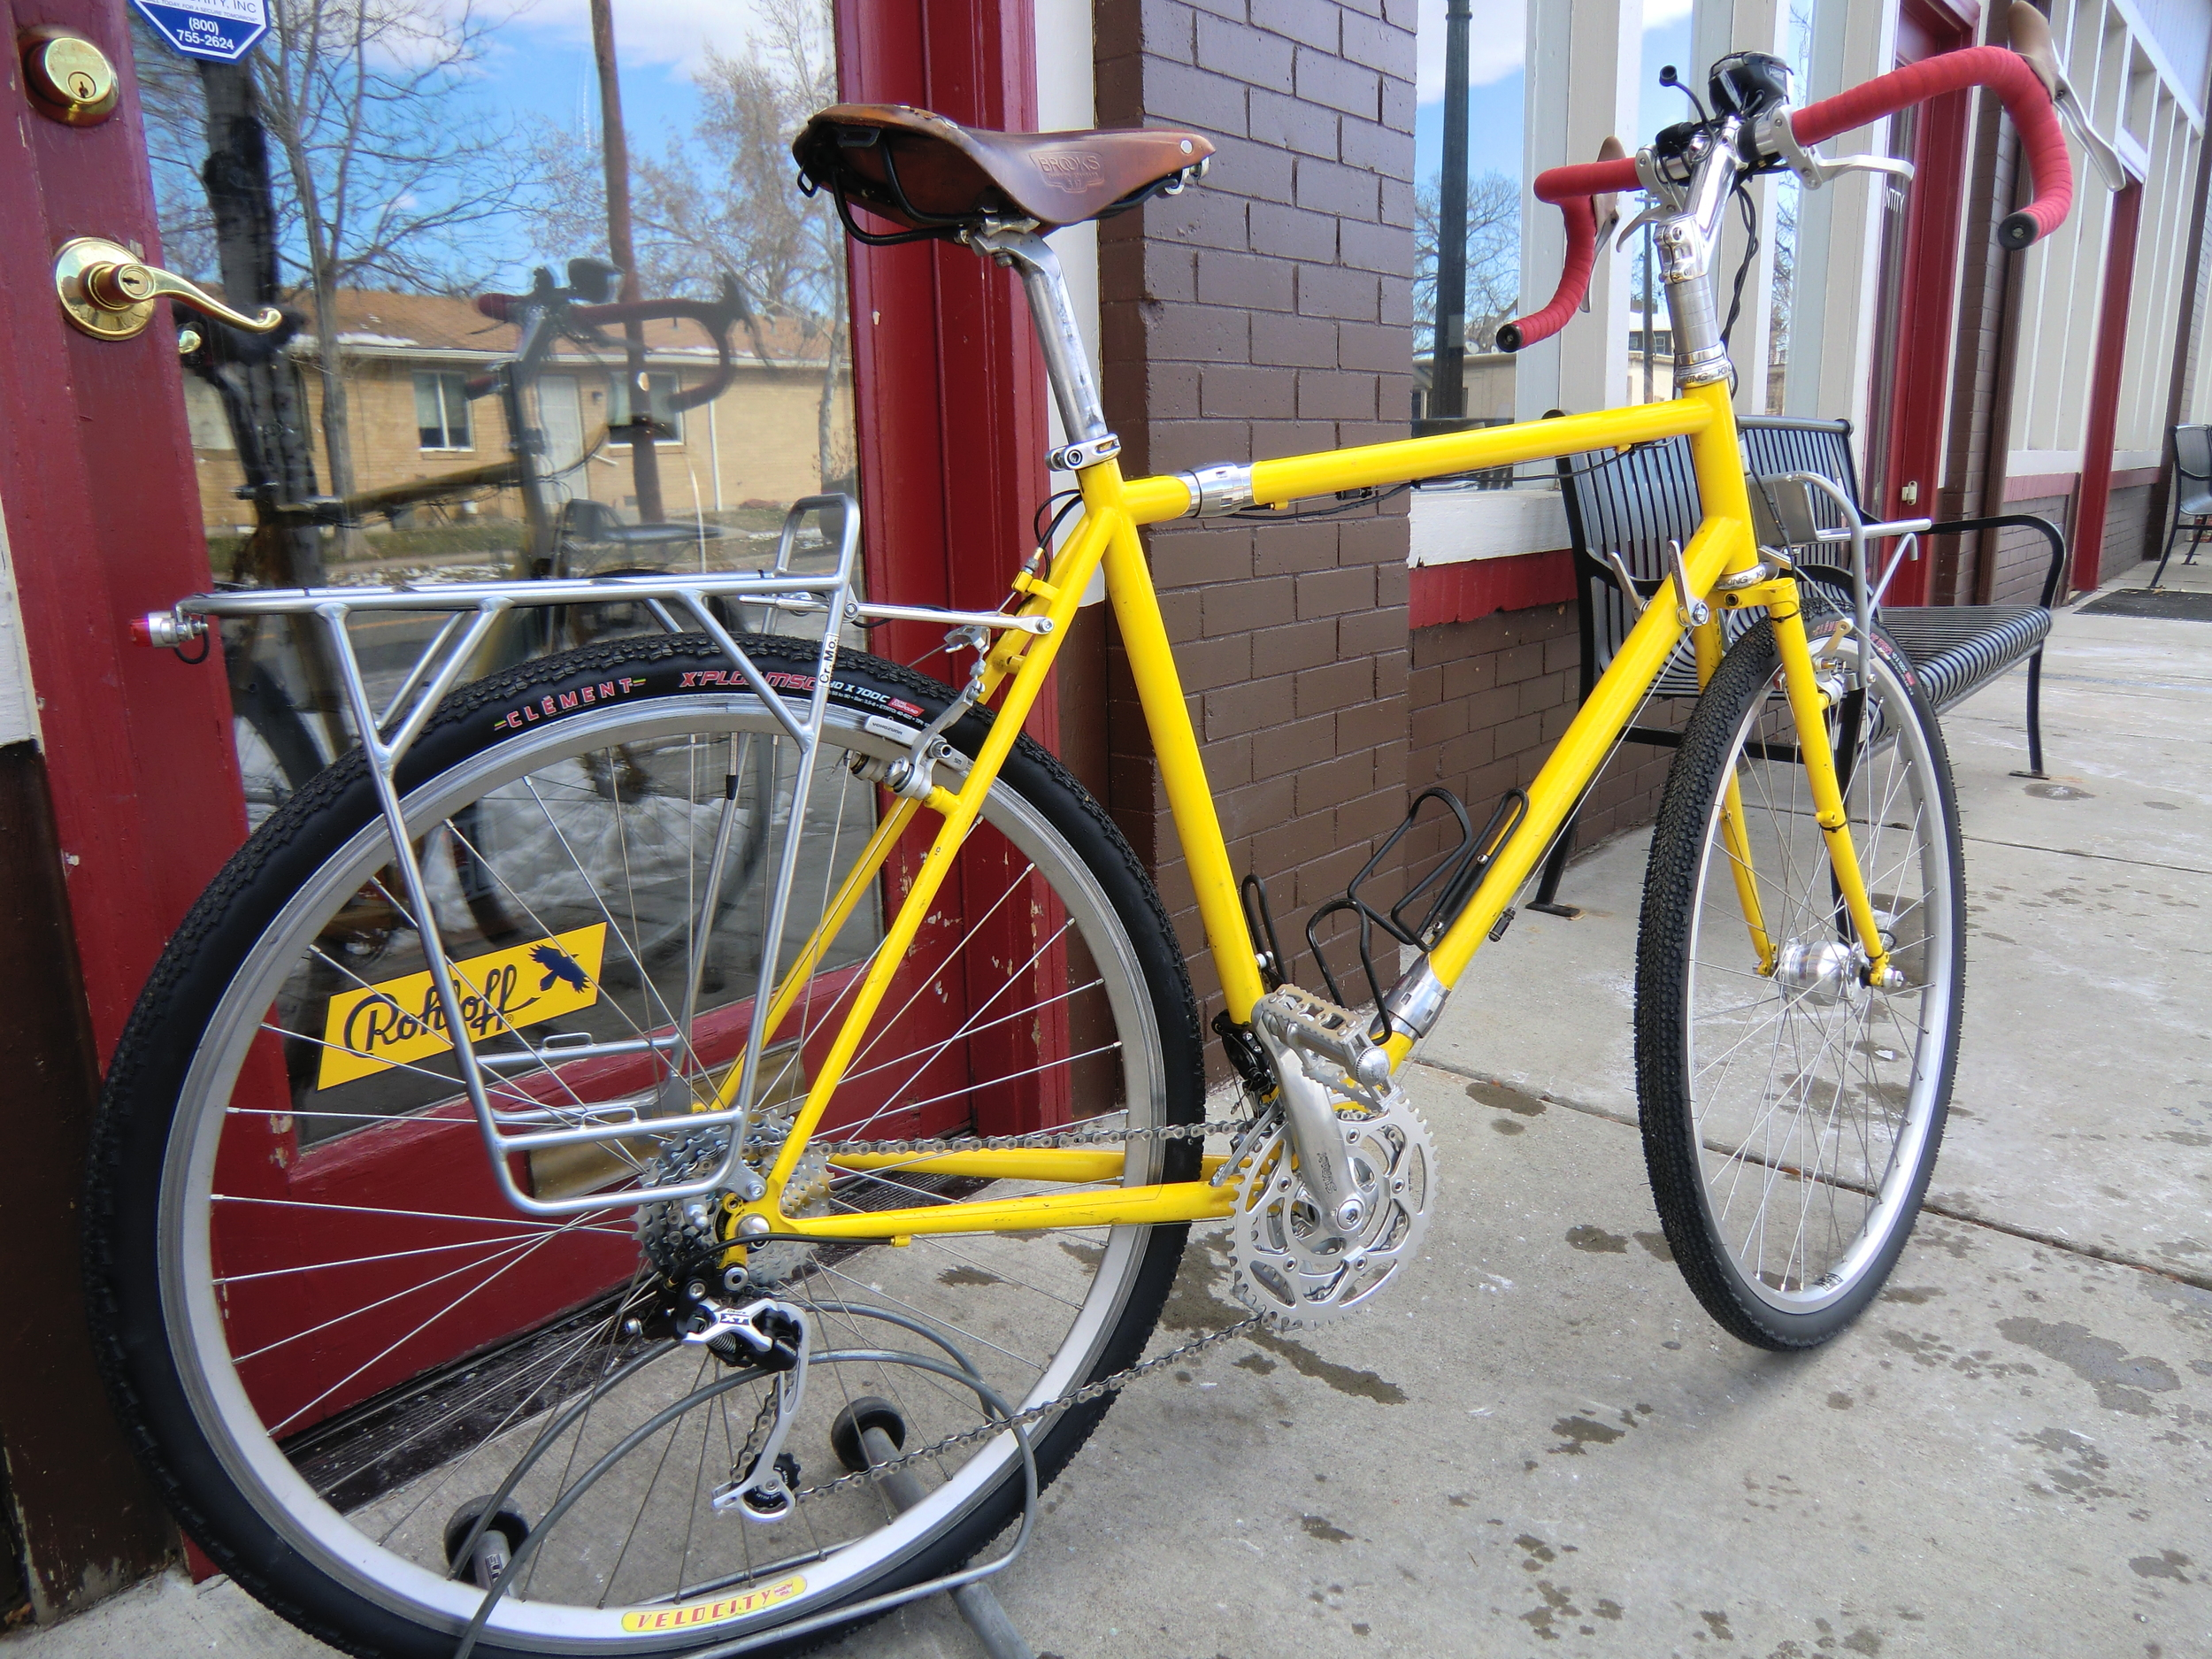 newly overhauled Gunnar Touring bicycle